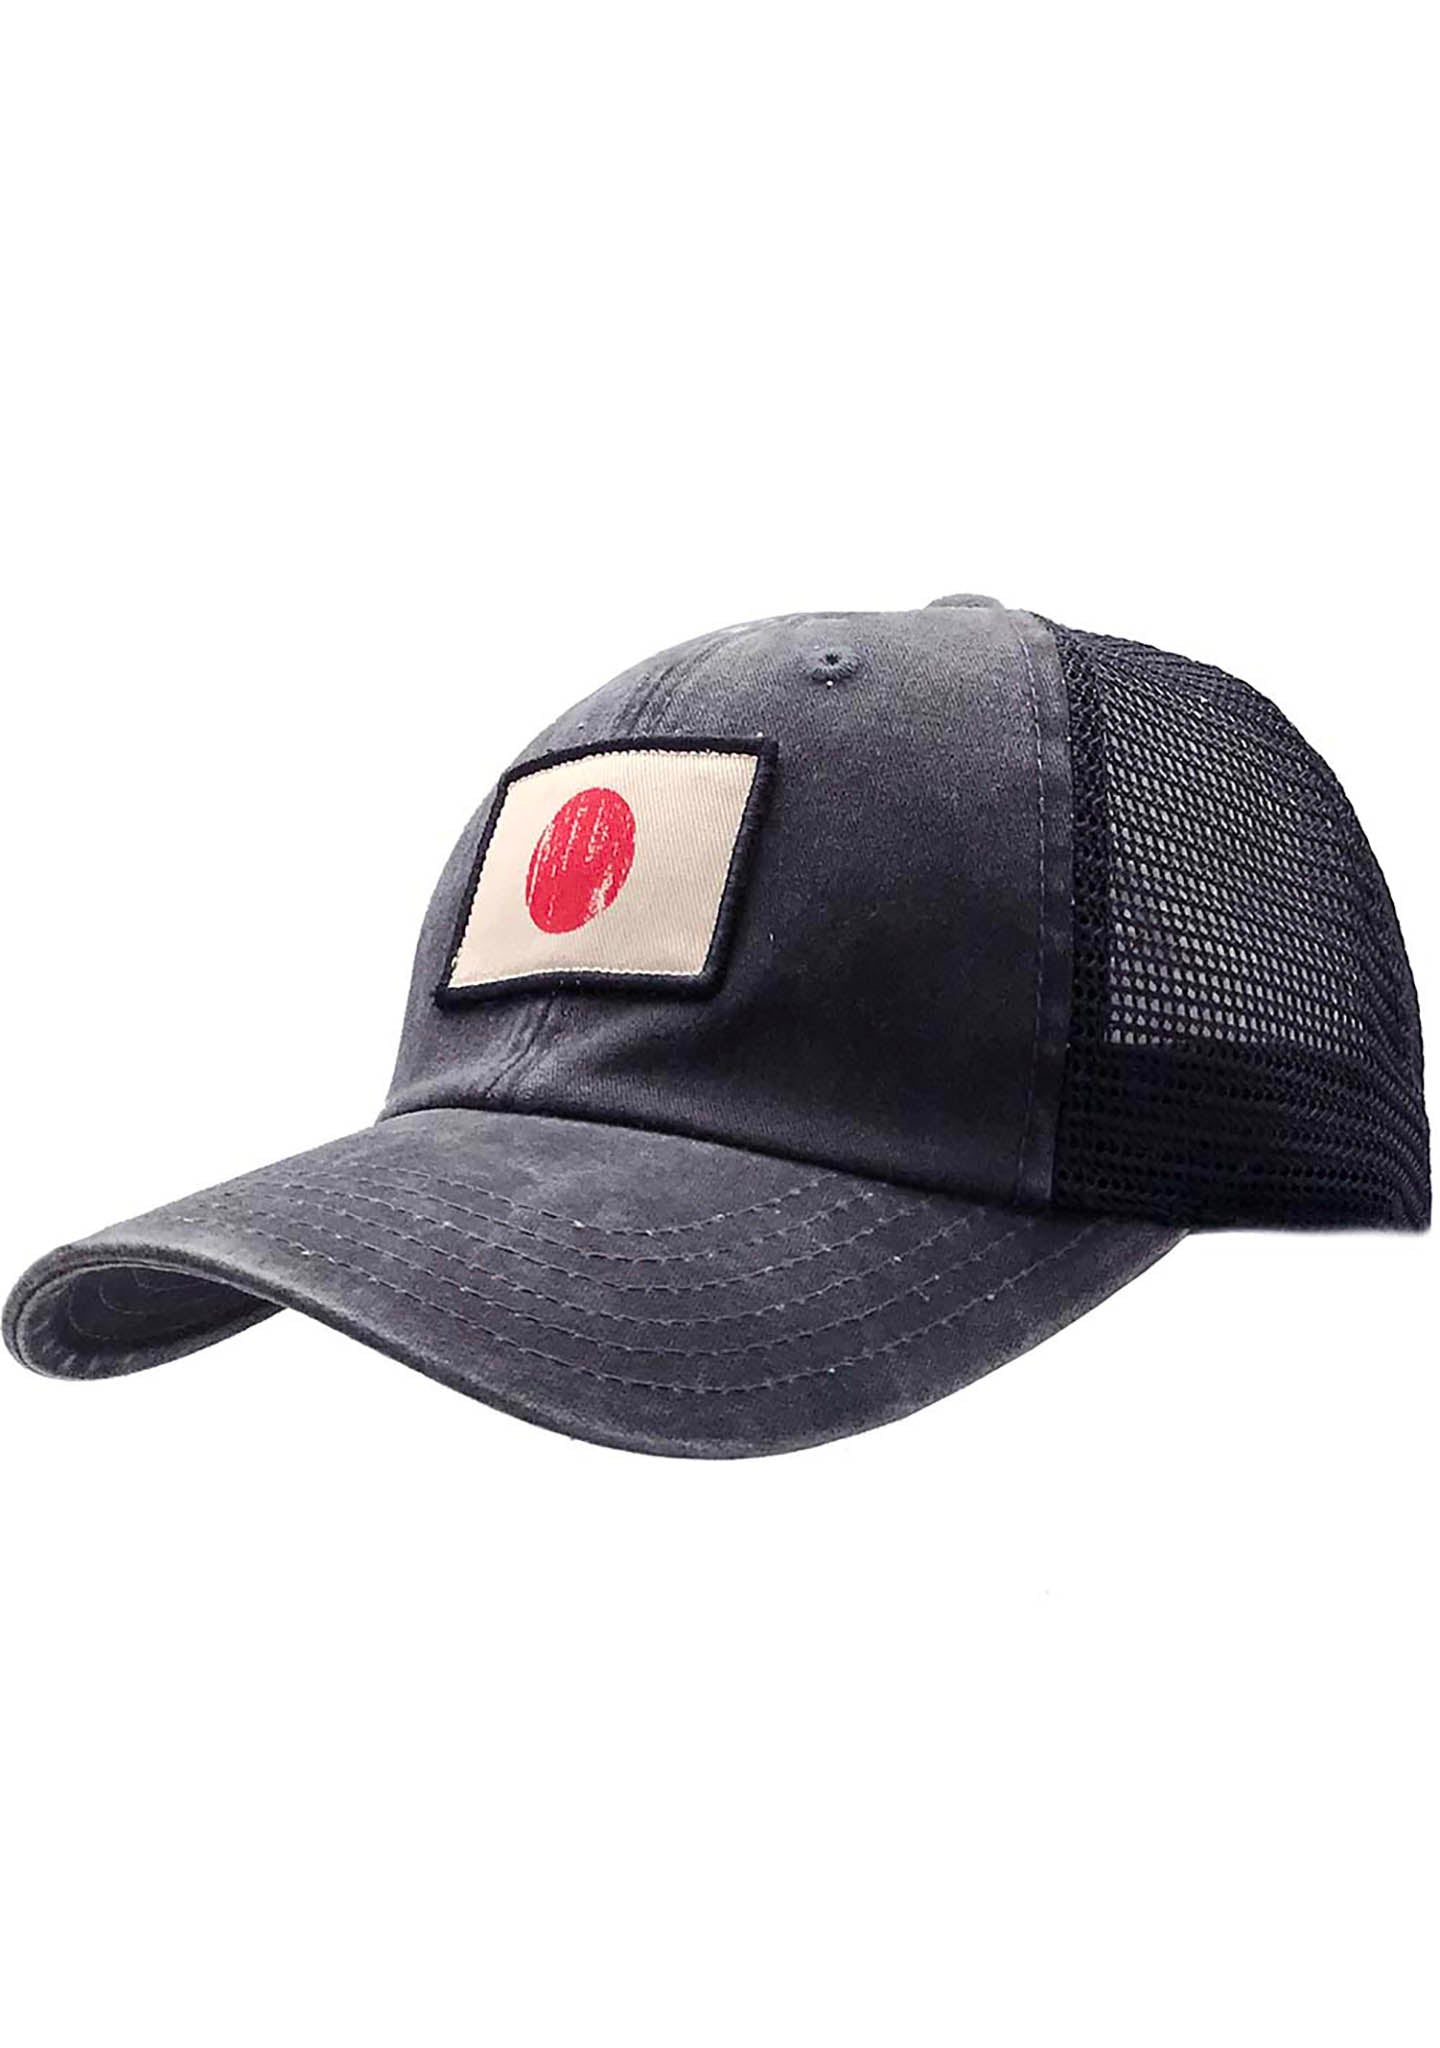 American Needle Japan Badger Hat